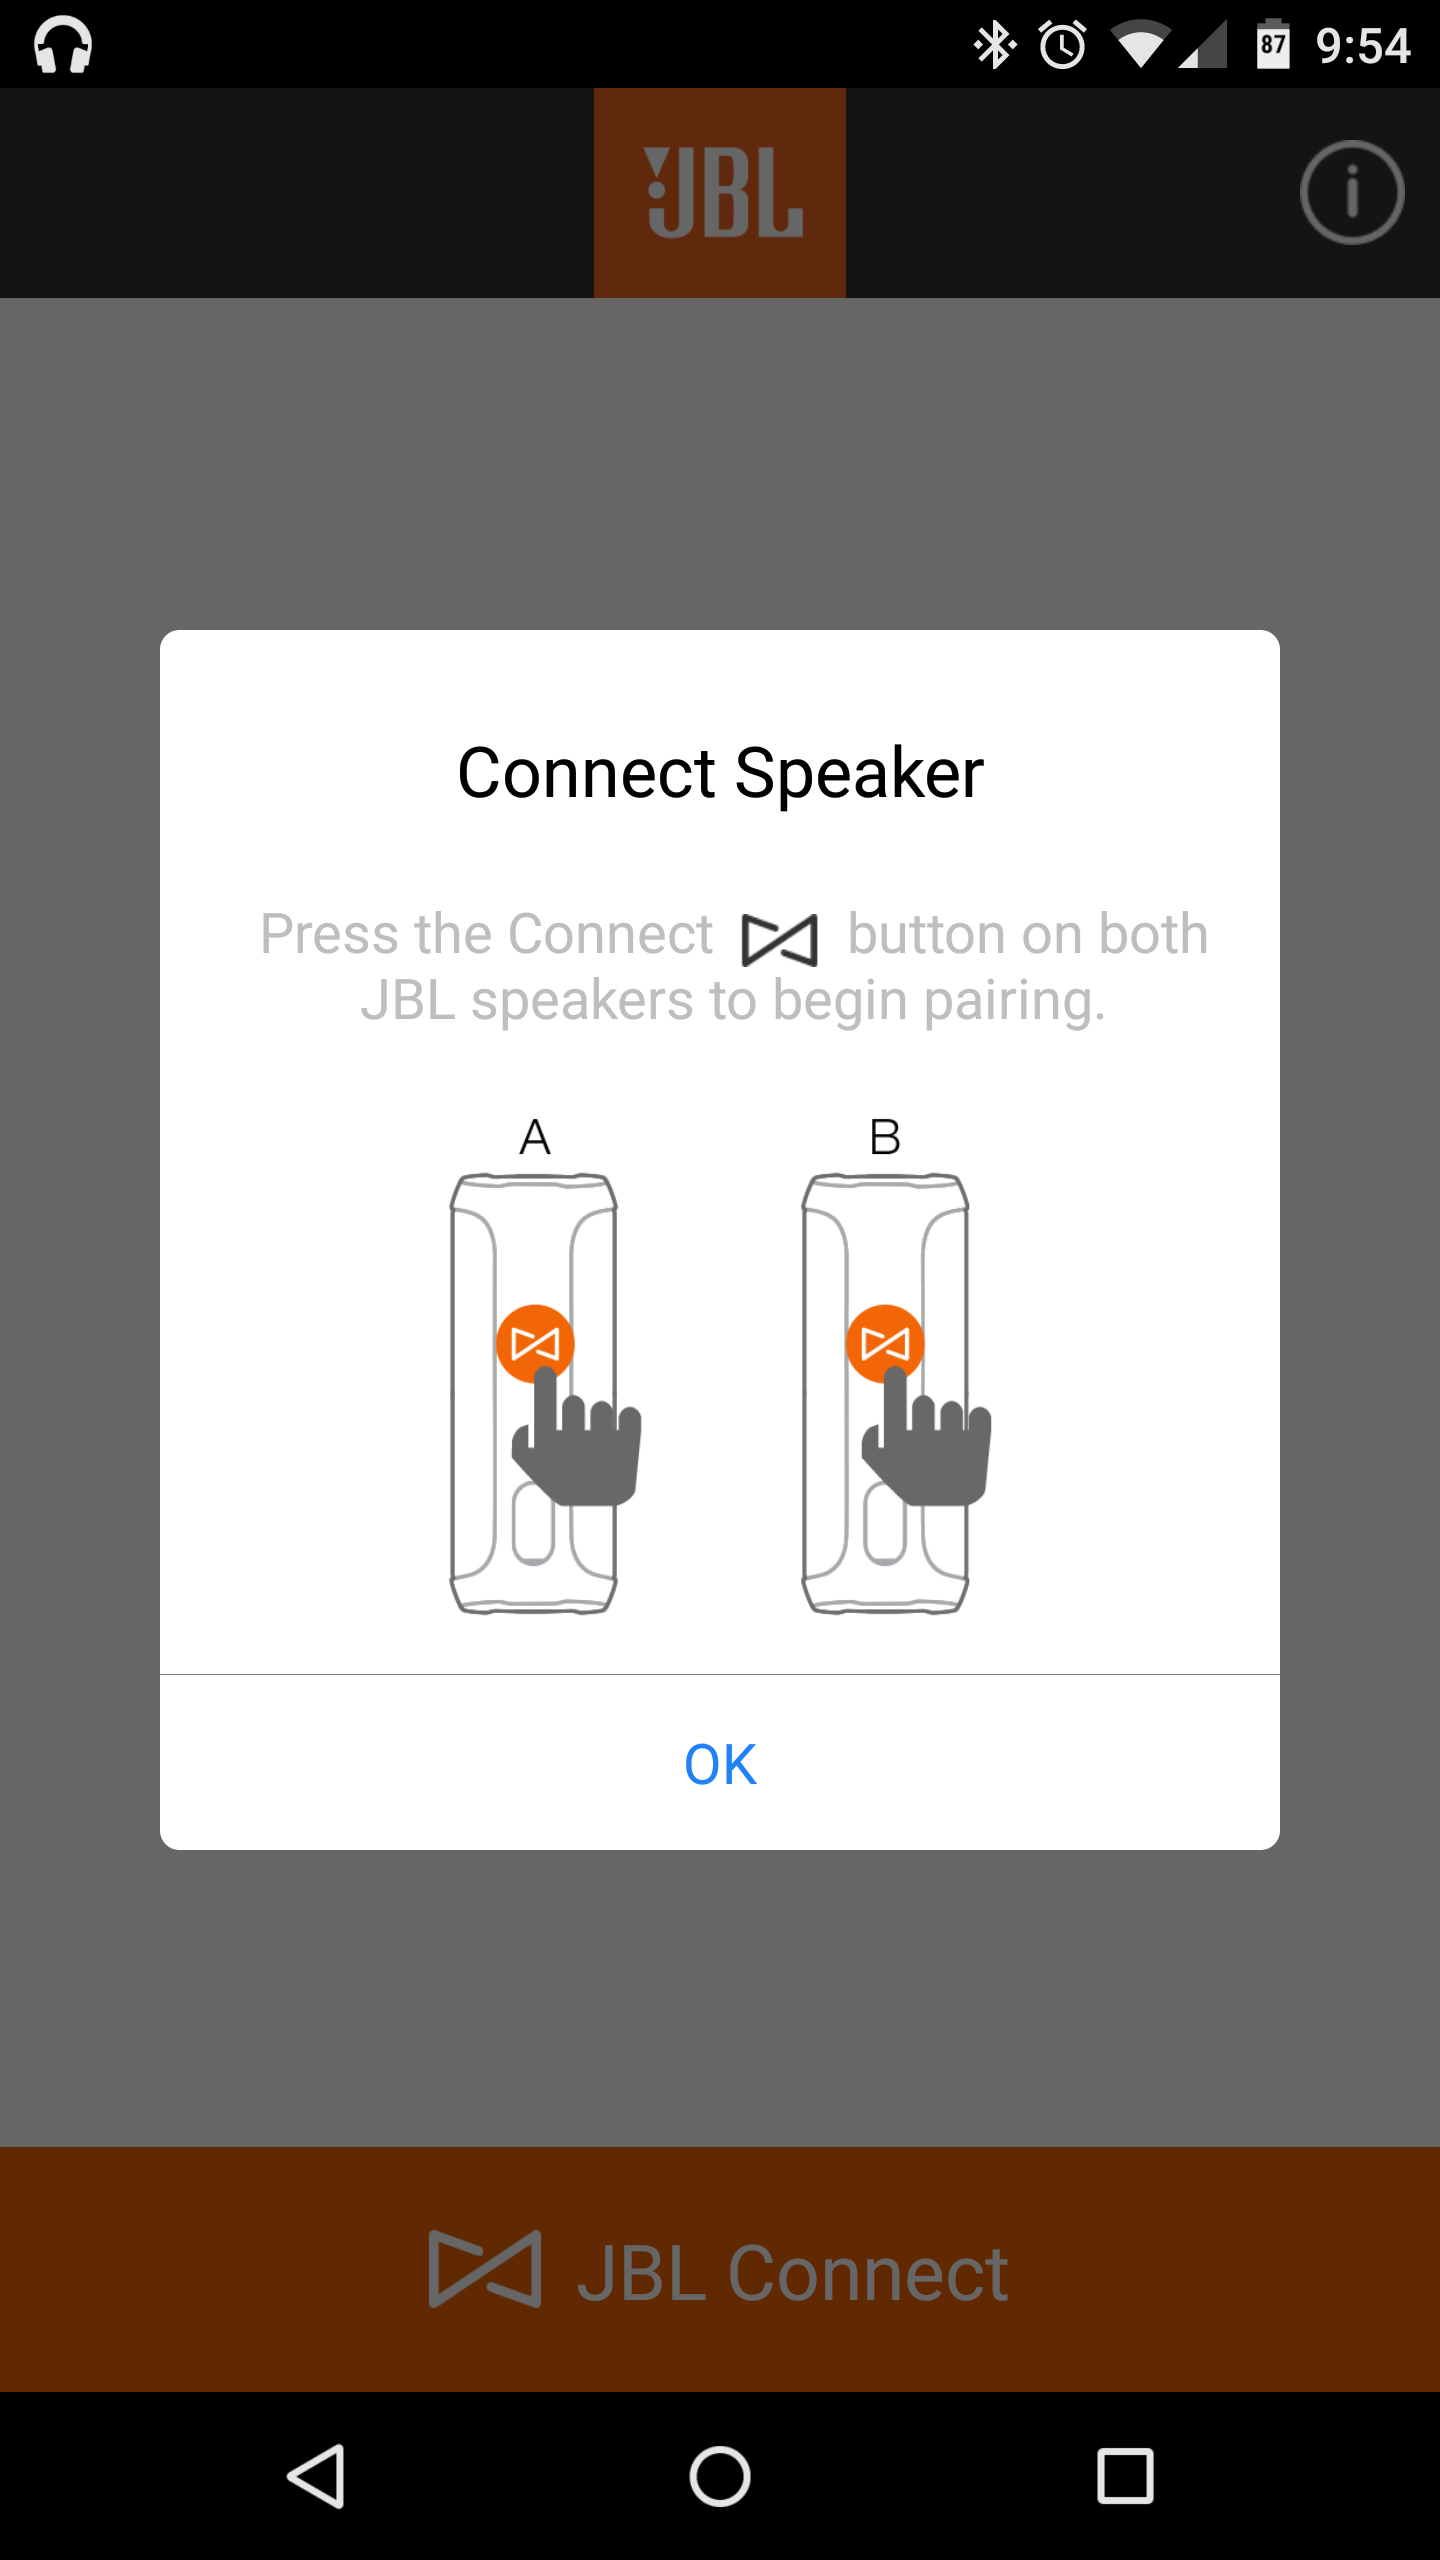 how to connect jbl to macbook